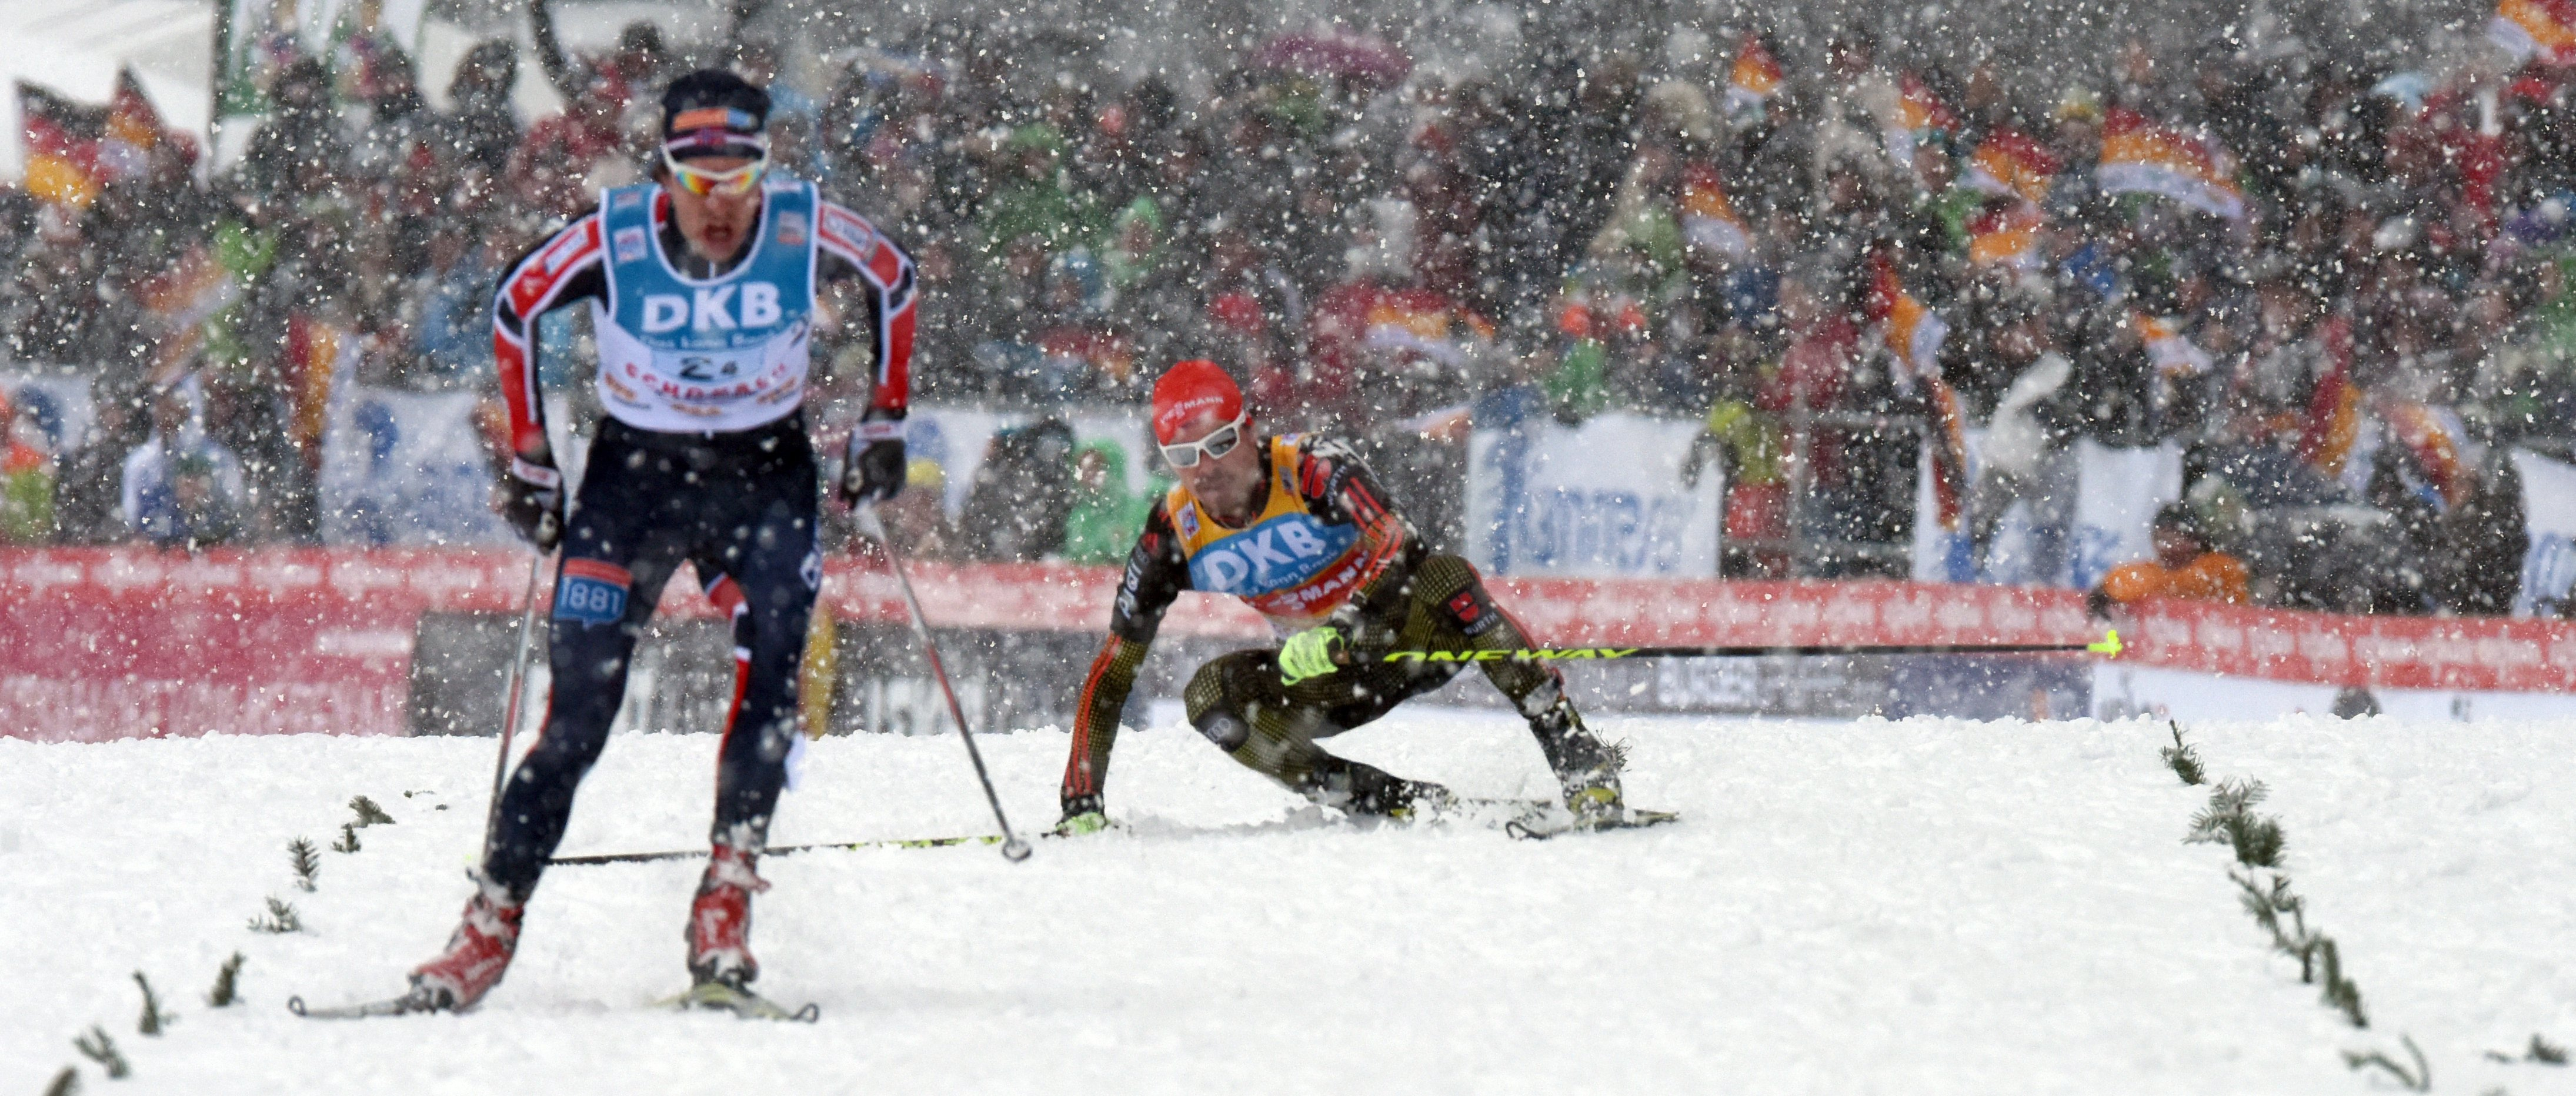 germany_nordic_combined_world_cup-7d9bfe_r1242.jpeg